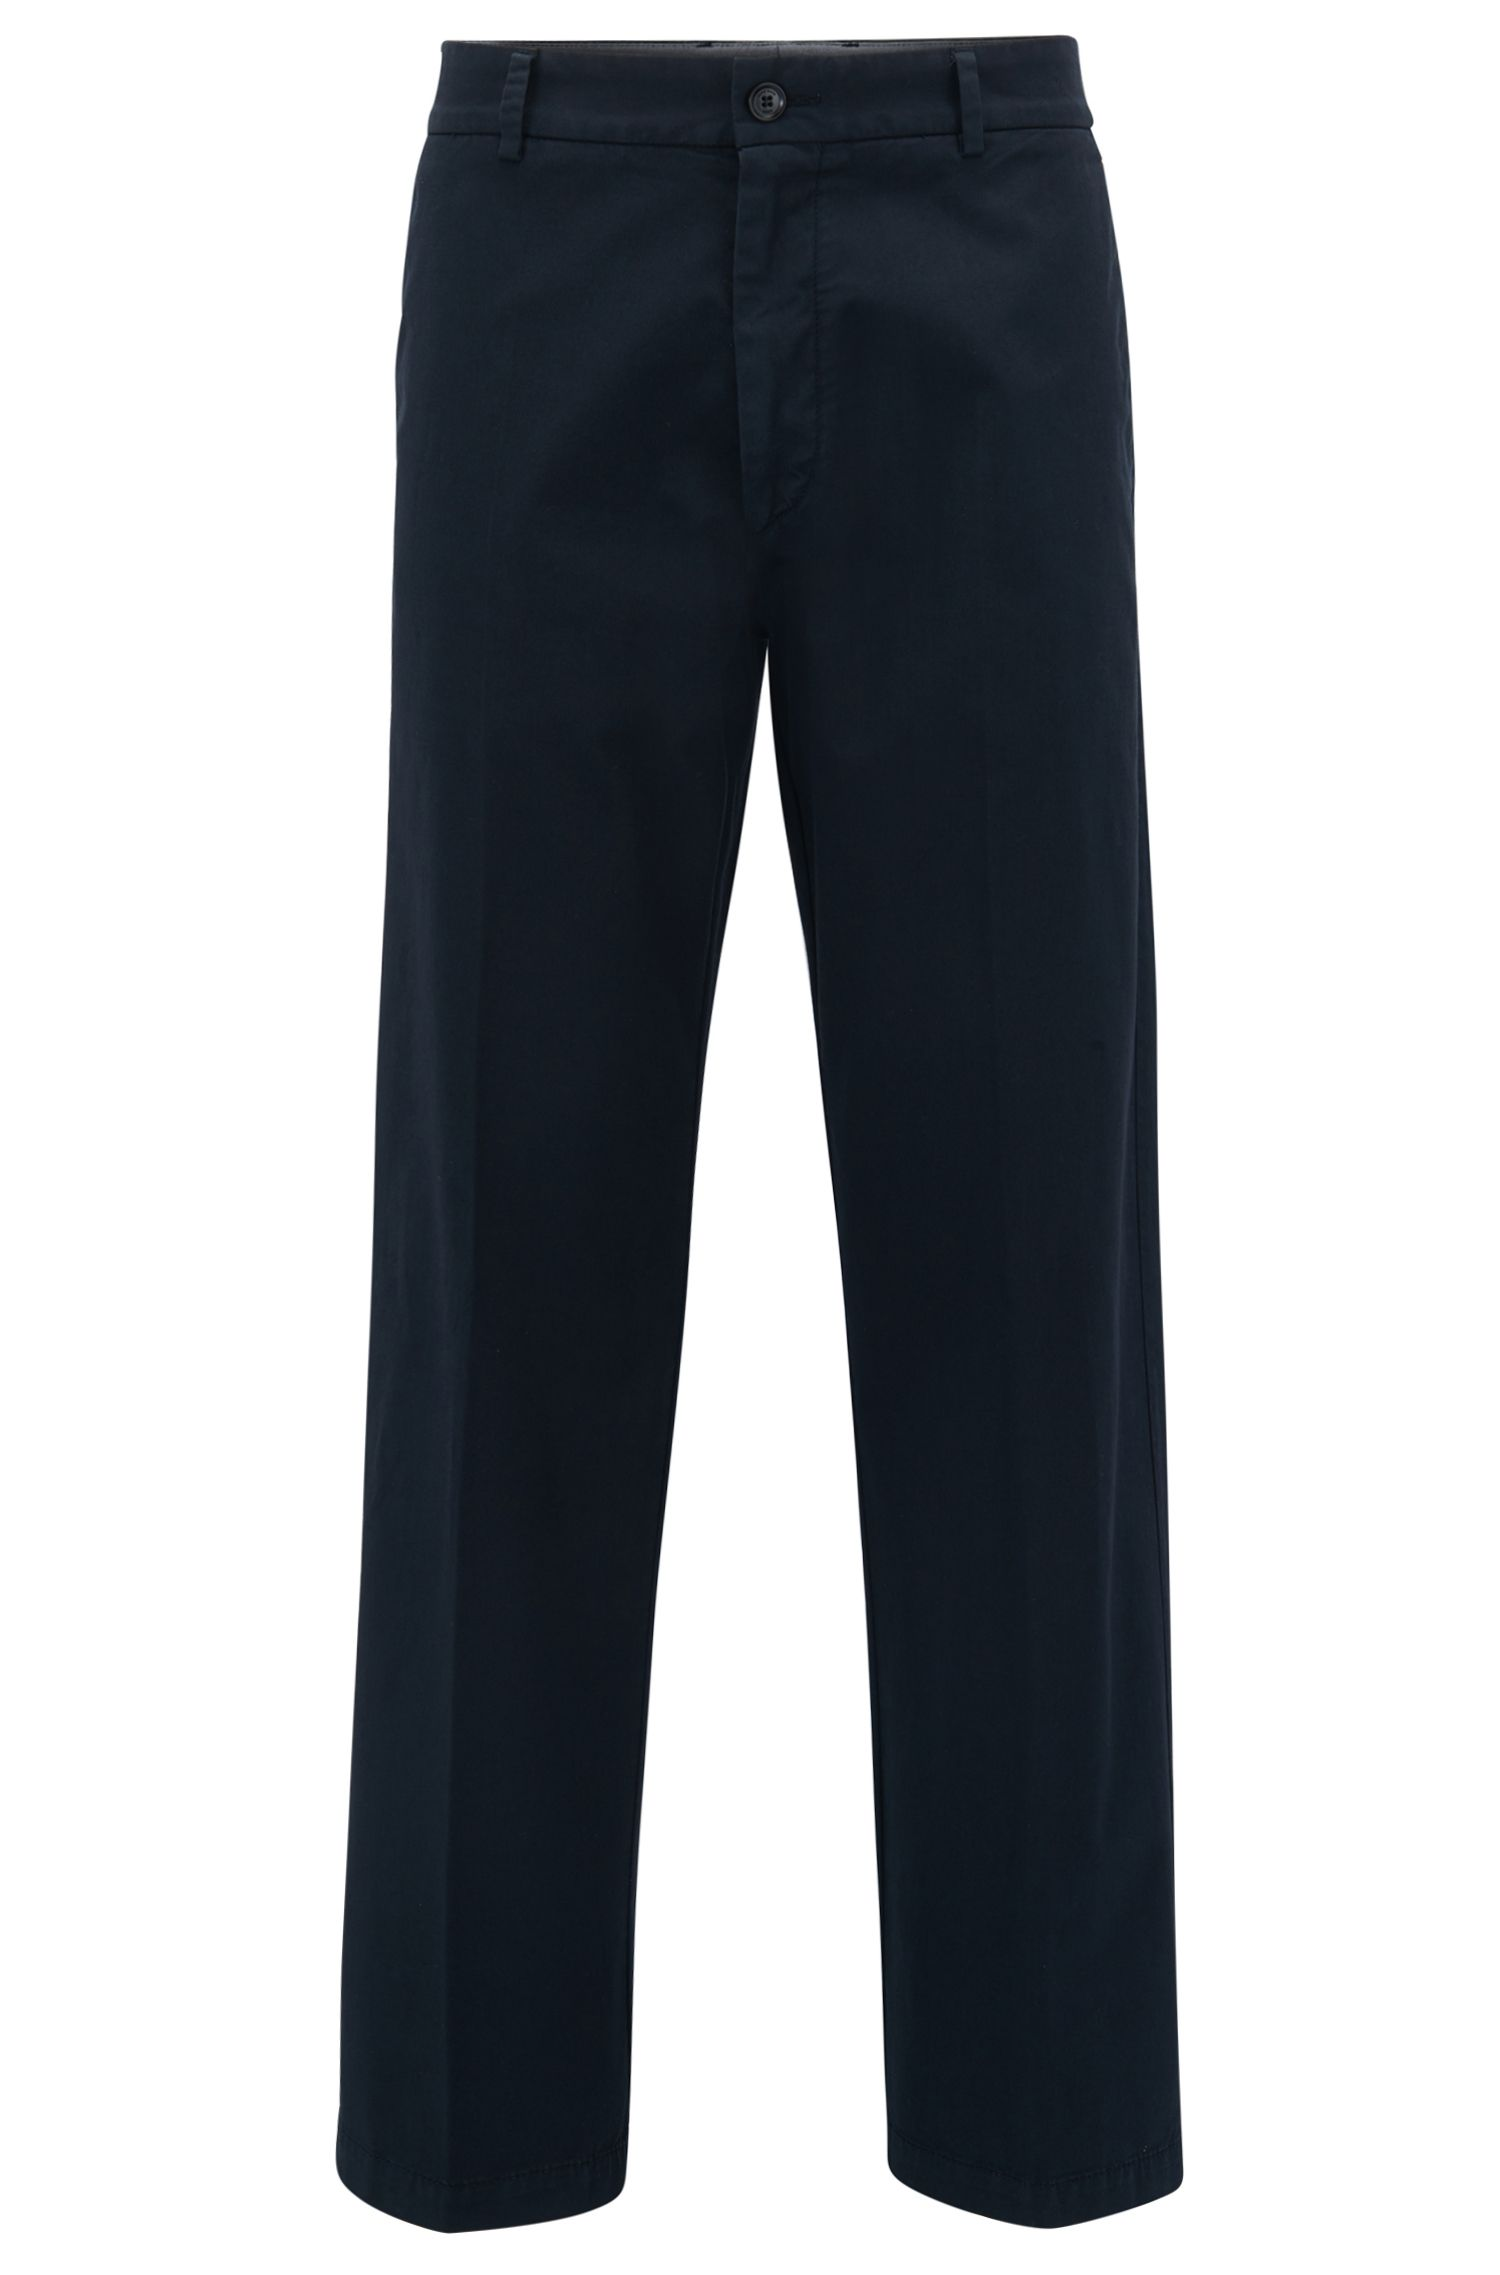 Stretch Cotton Dress Pant, Relaxed Fit | Parko SPW D